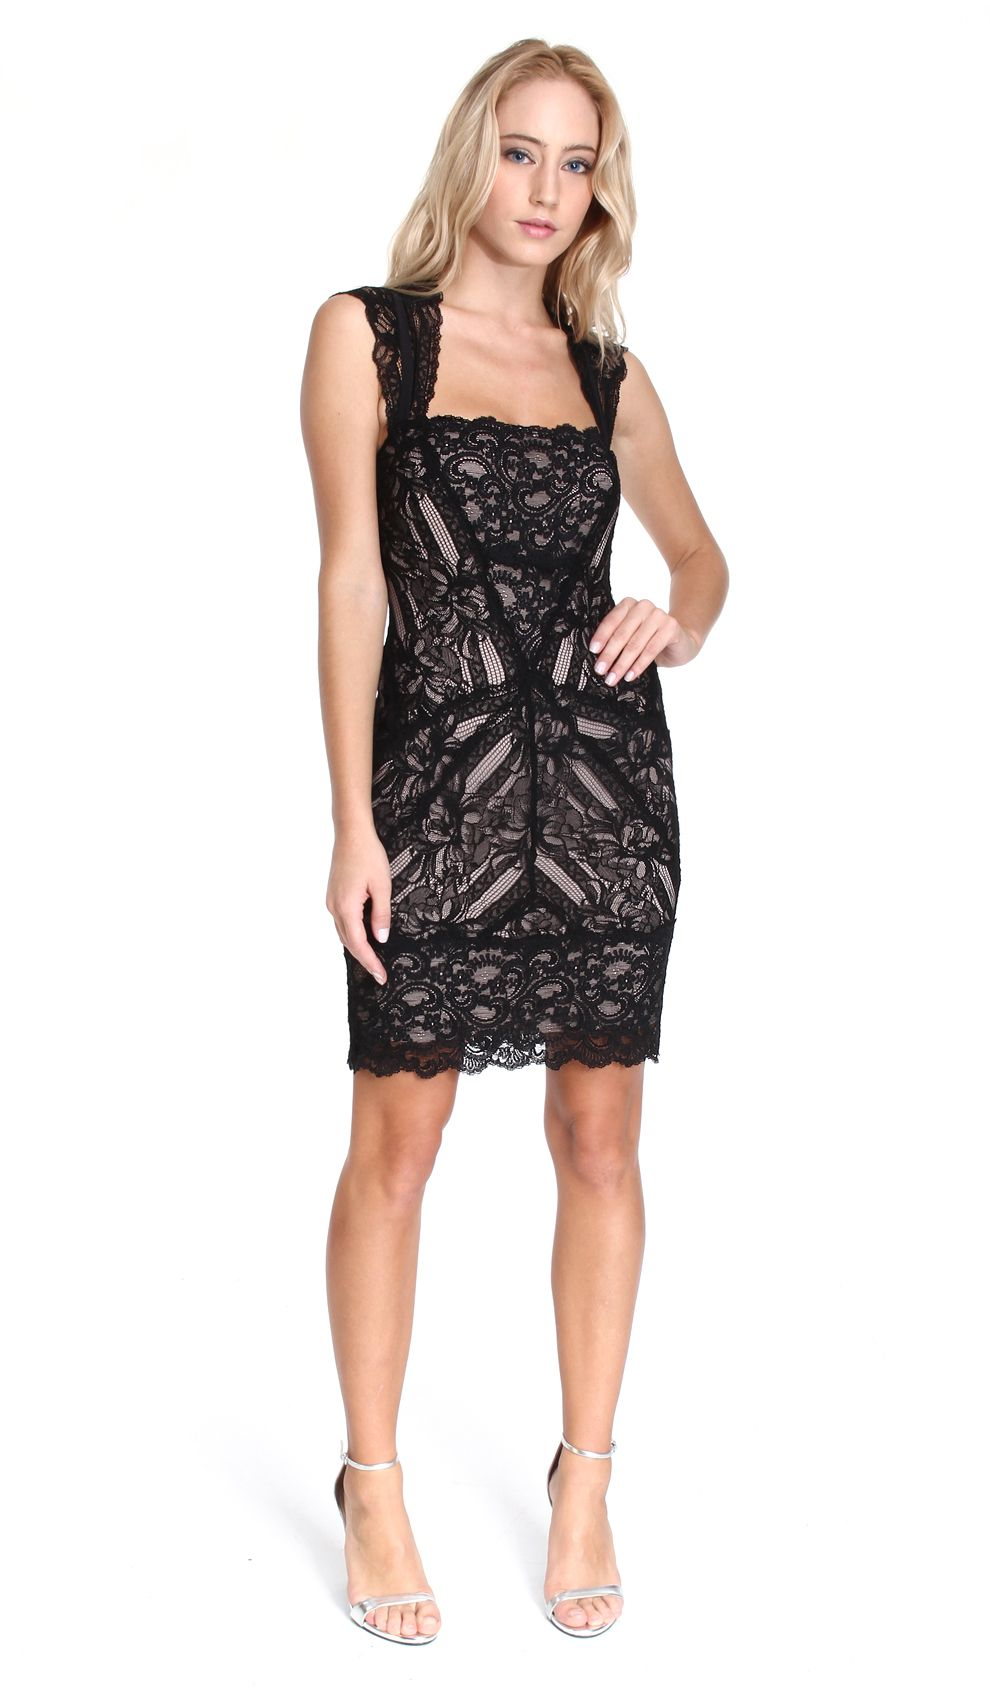 Nicole Miller Black and Nude Lace Dress | Designer Dress Hire and ...